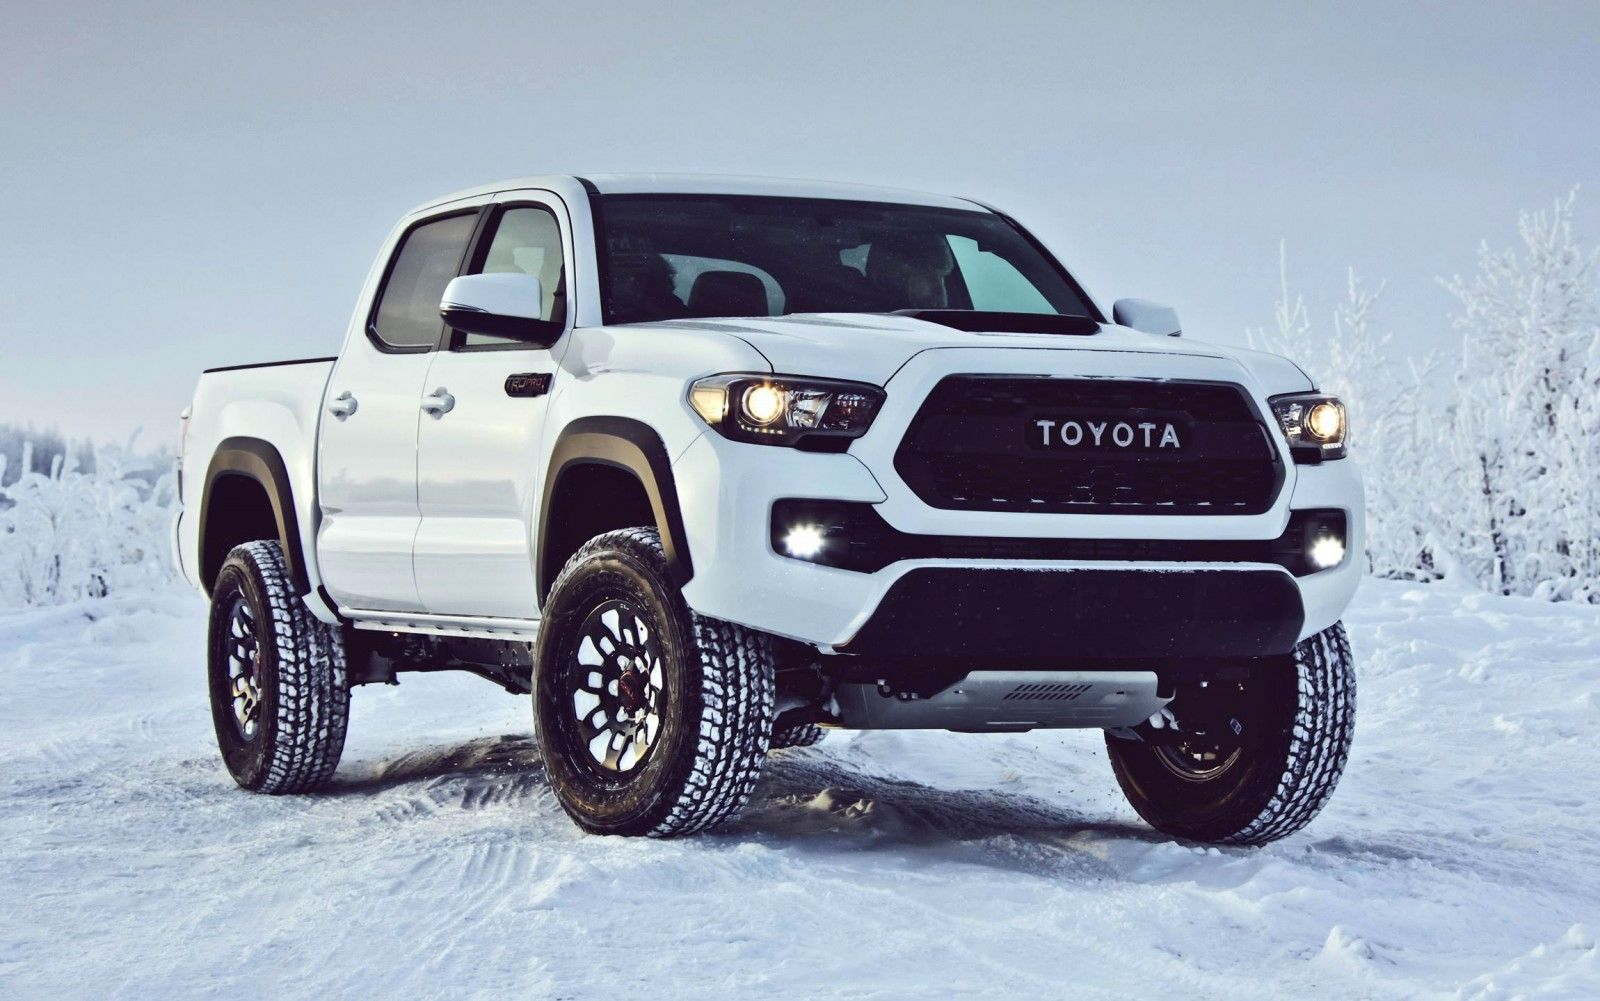 Best 20 tacoma trd ideas on pinterest toyota tacoma trd toyota tacoma 2016 and toyota tacoma 4x4